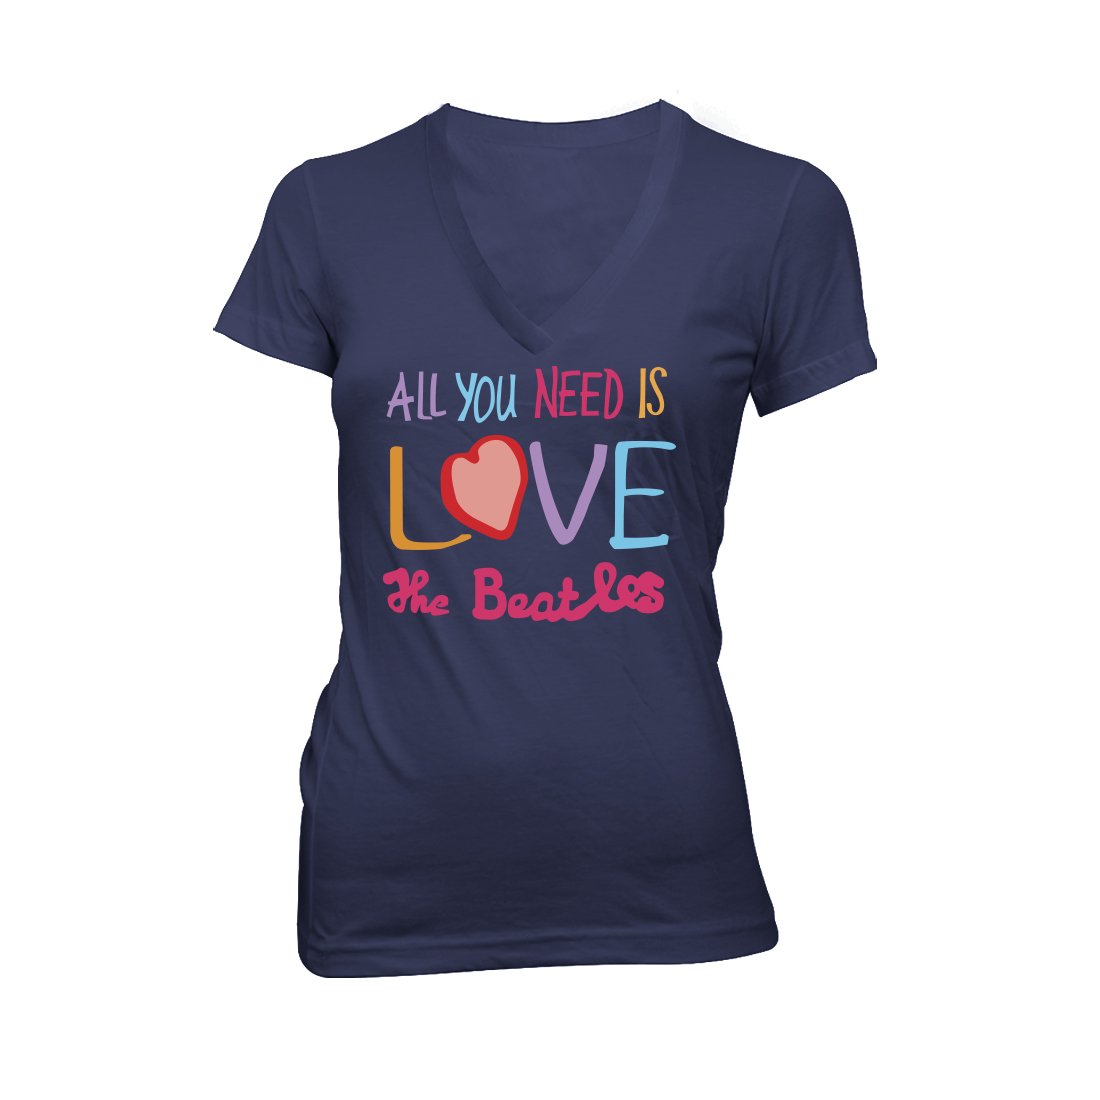 All You Need Is Love Women's V-Neck